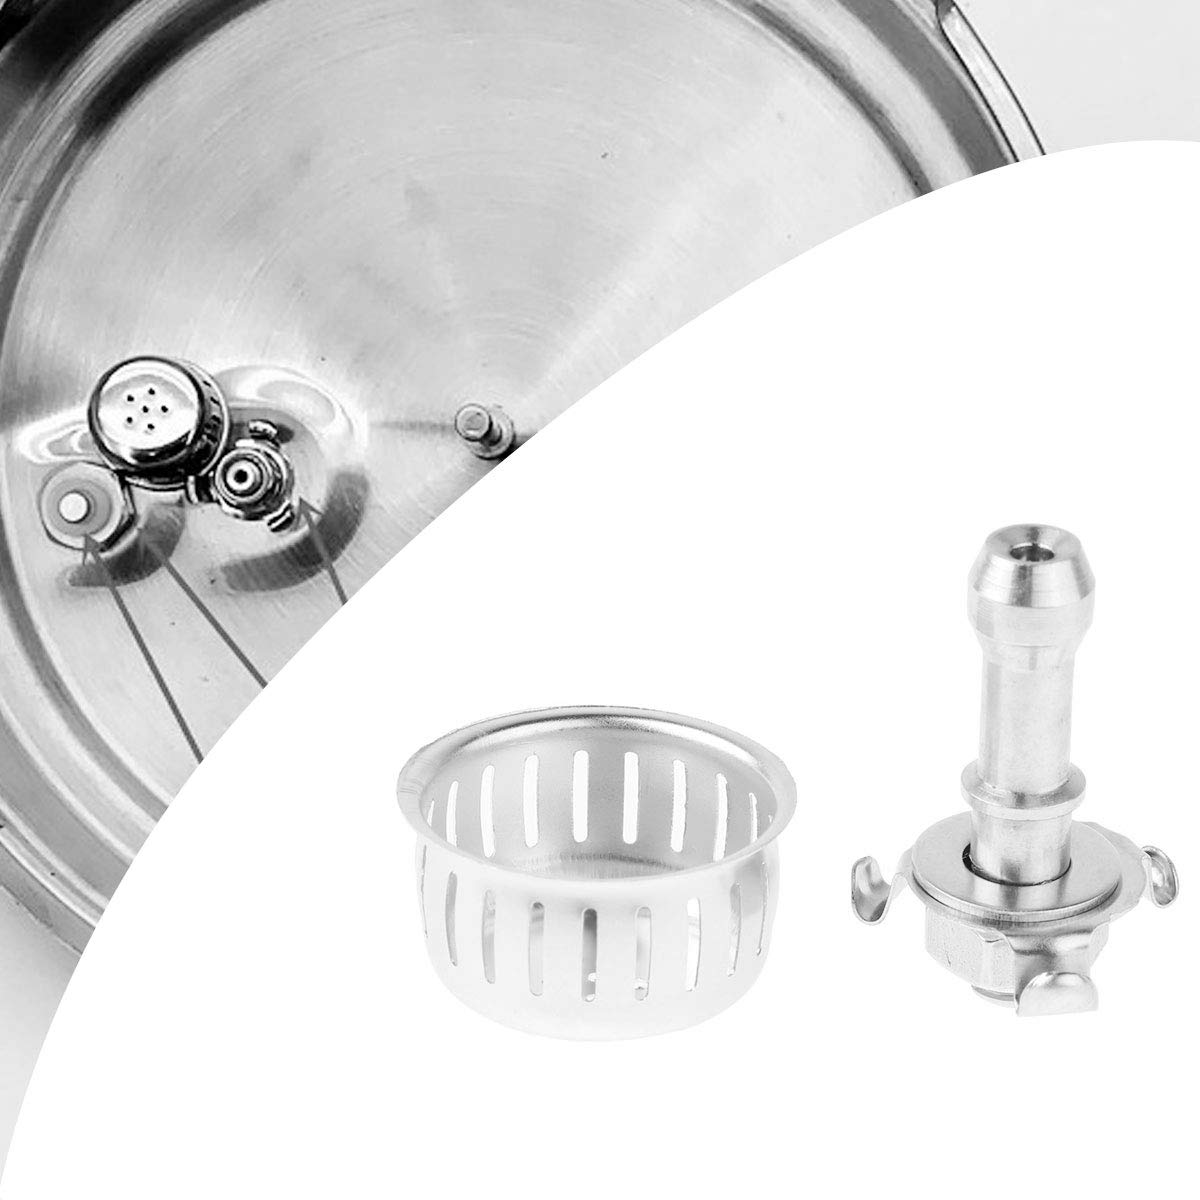 Freebily 2 Sets Universal Kitchen Pressure Cooker Cap Relief Jigger Valve Replacements with Anti Blocking Cover Bracket and Gasket Silver One Size by Freebily (Image #6)